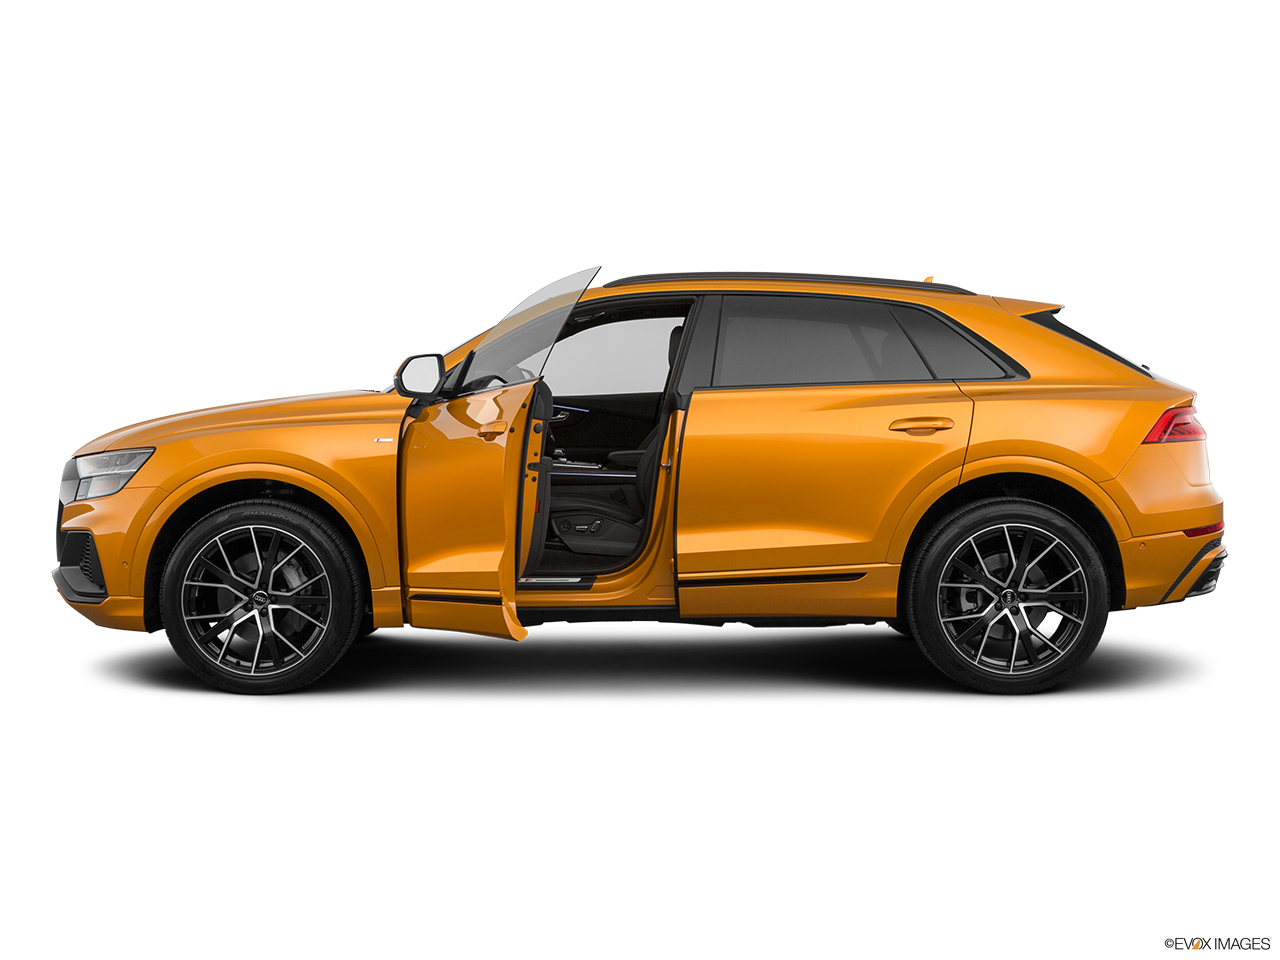 2019 Audi Q8 Prestige 3.0 TFSI Driver's side profile with drivers side door open.